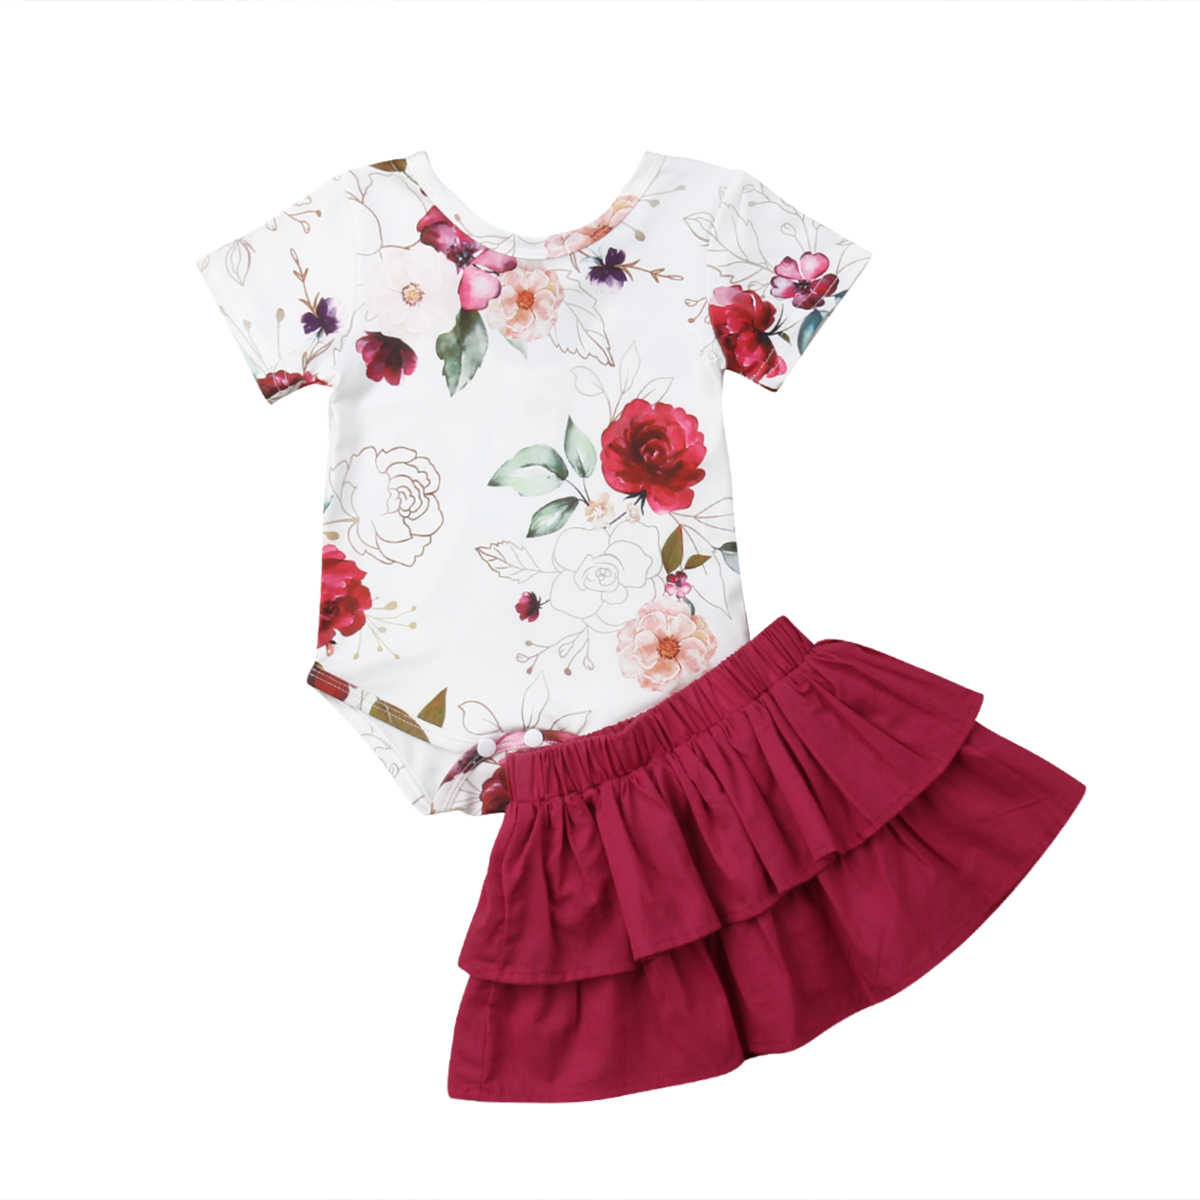 4fdc5fa19f5 ... Newborn Infant Baby Girl 2PCS Outfits Clothes Set Flower Romper Bodysuit  Ruffle Mini Skirts Summer Baby ...